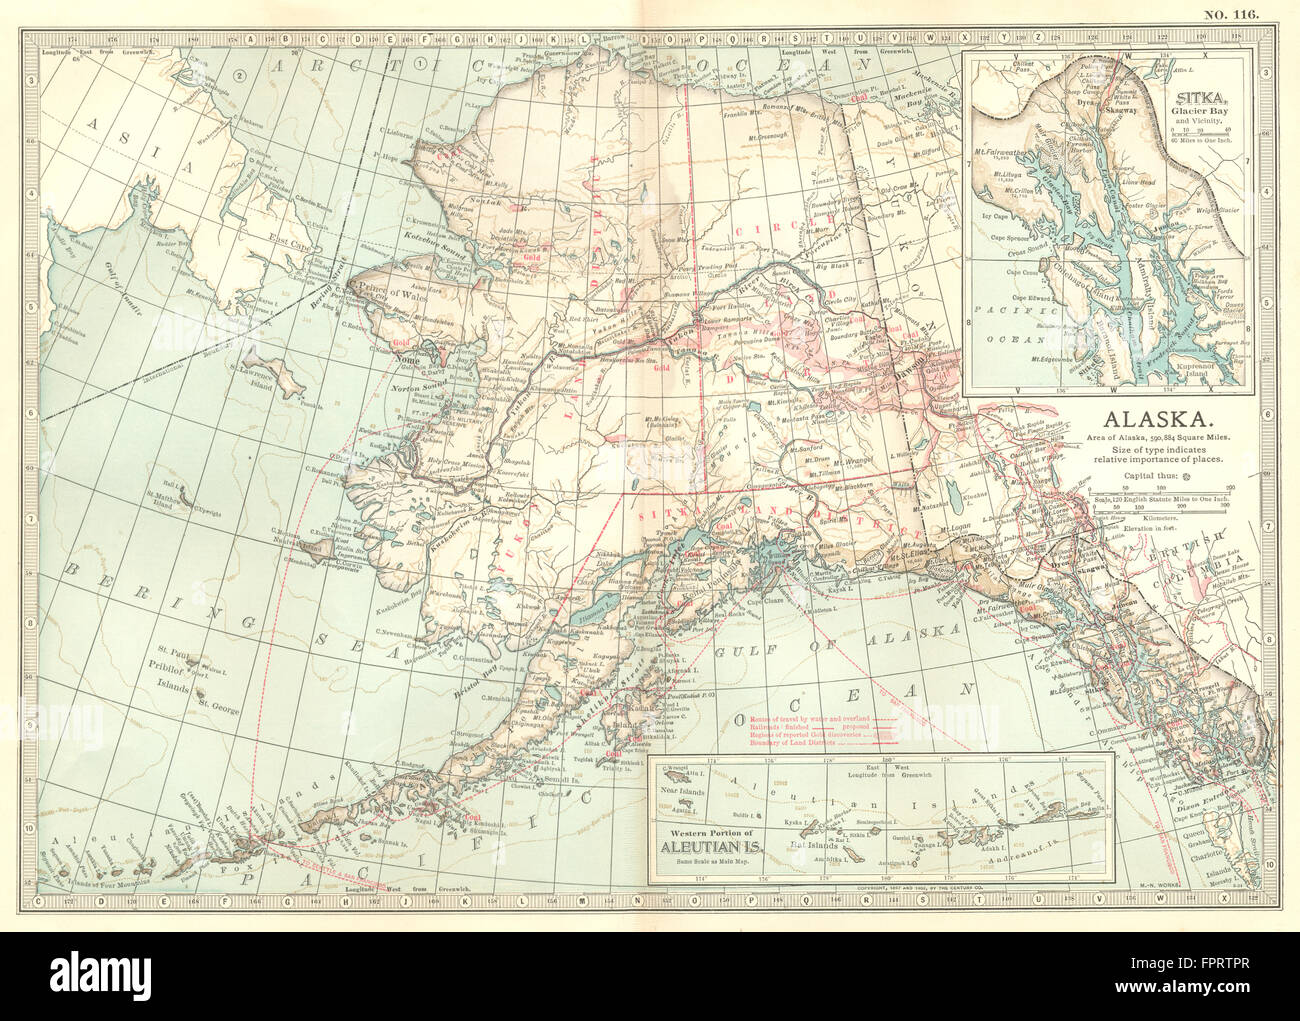 ALASKA: Showing boroughs. Inset Aleutian Isles, Sitka ...